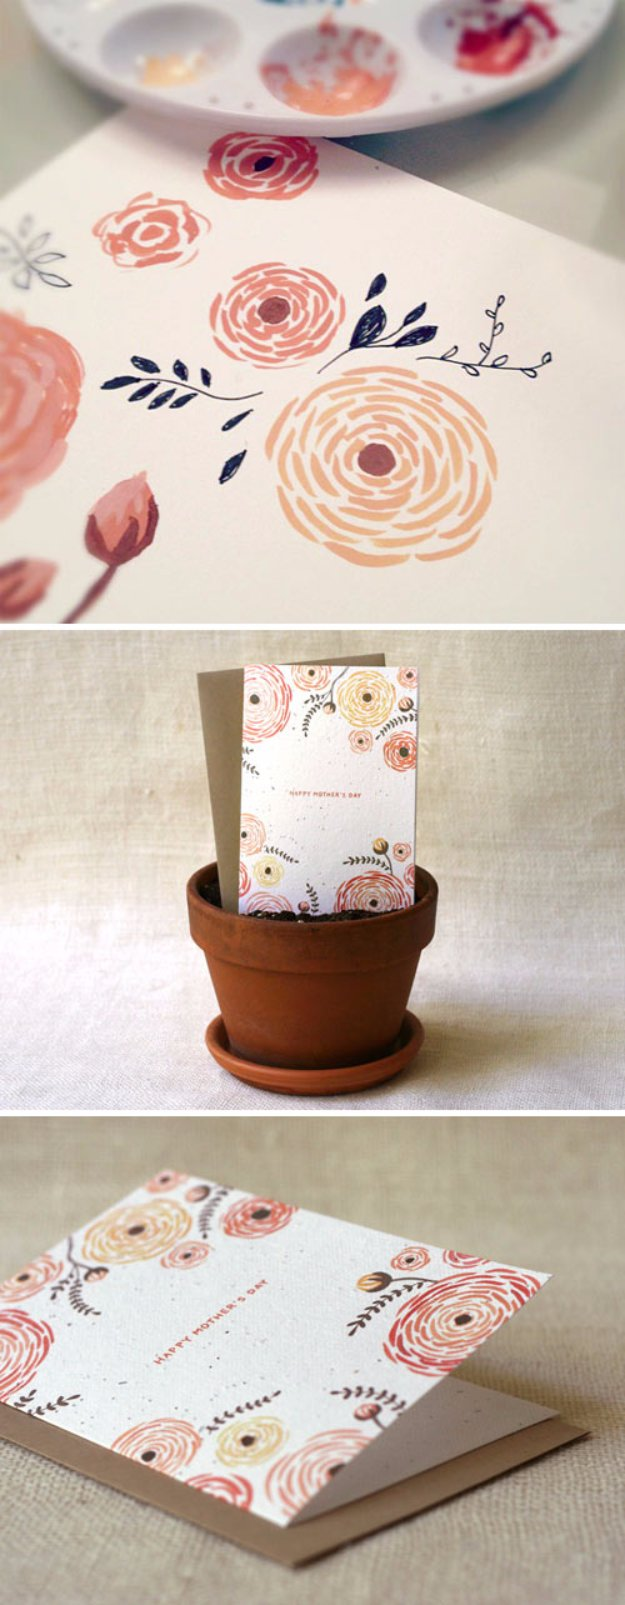 DIY Mothers Day Cards - DIY Bouquet Wildflower Seeds Embedded Card - Creative and Thoughtful Homemade Card Ideas for Mom - Step by Step Tutorials, Best Quotes, Handmade Projects